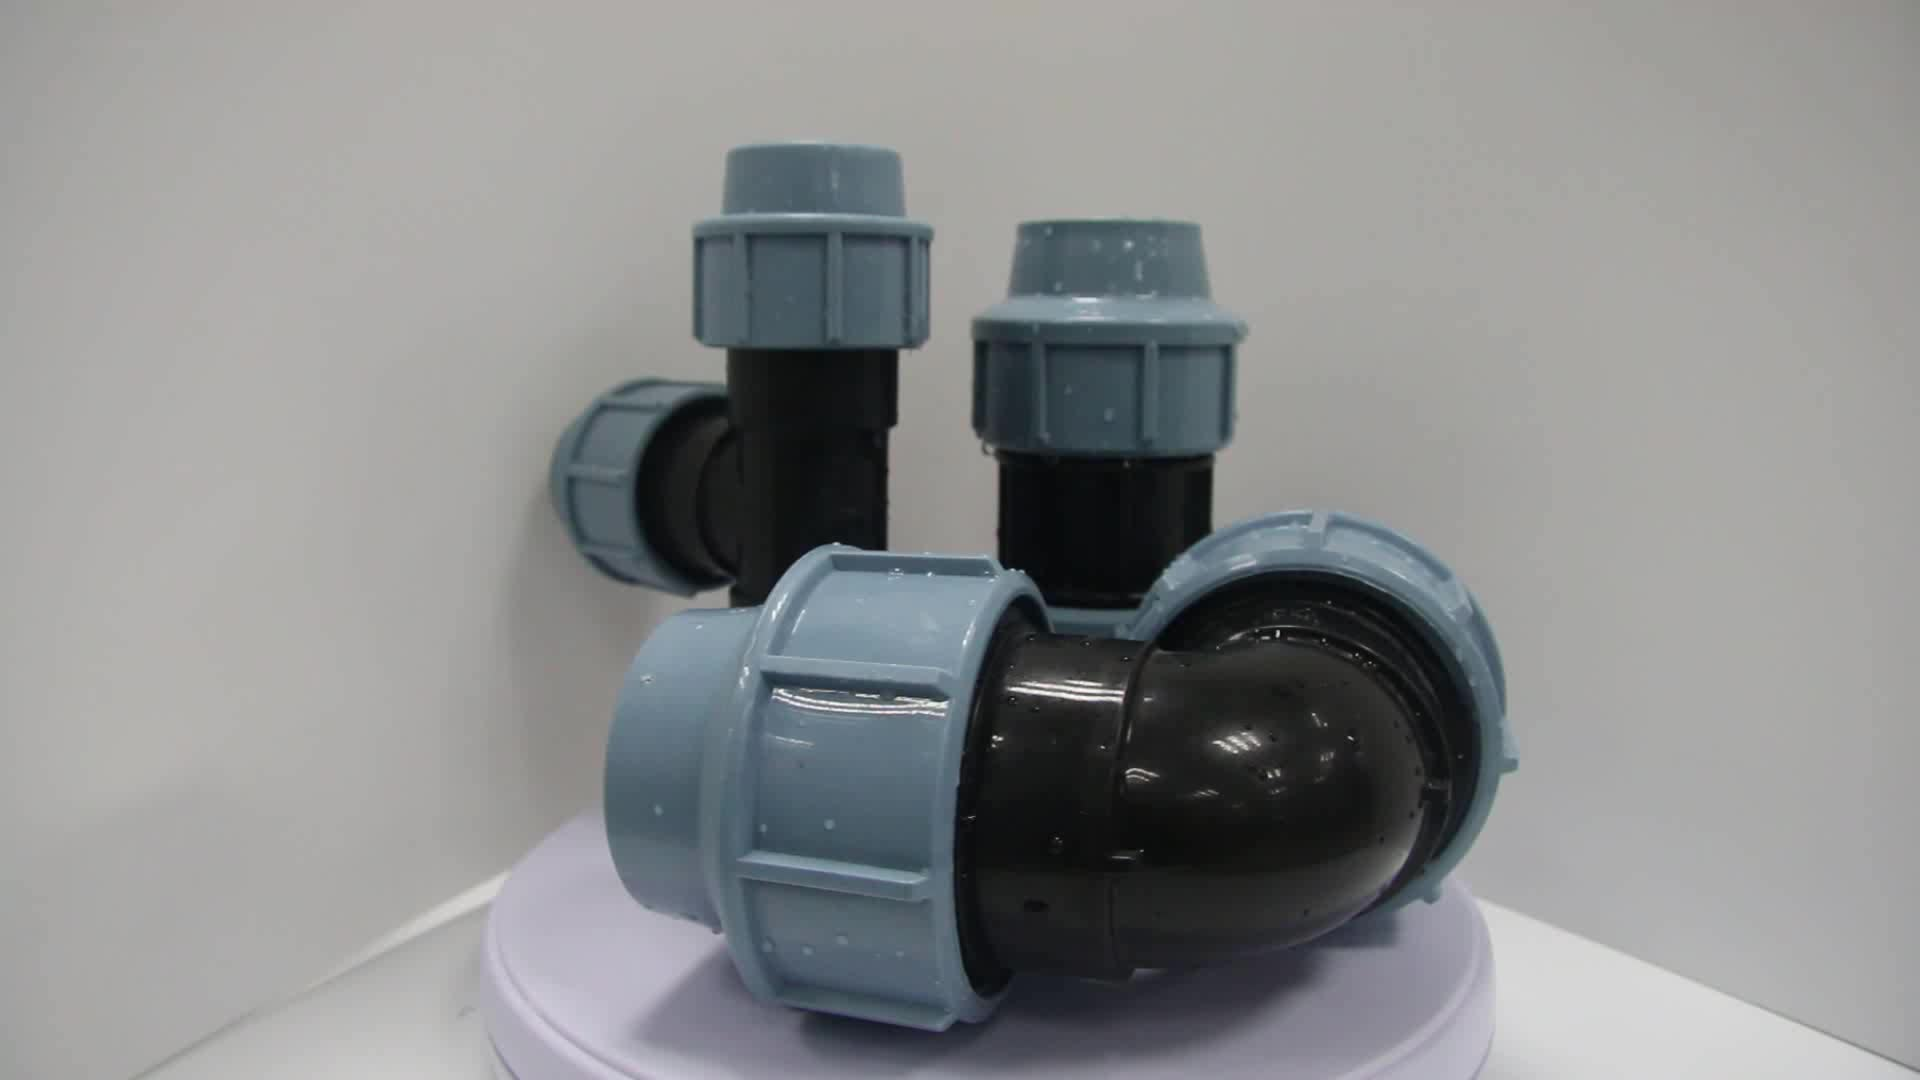 PP/PE PN 16/10 rubber/brass compression pipe fitting with reinforced ring for hdpe plumbing material plastic irrigation